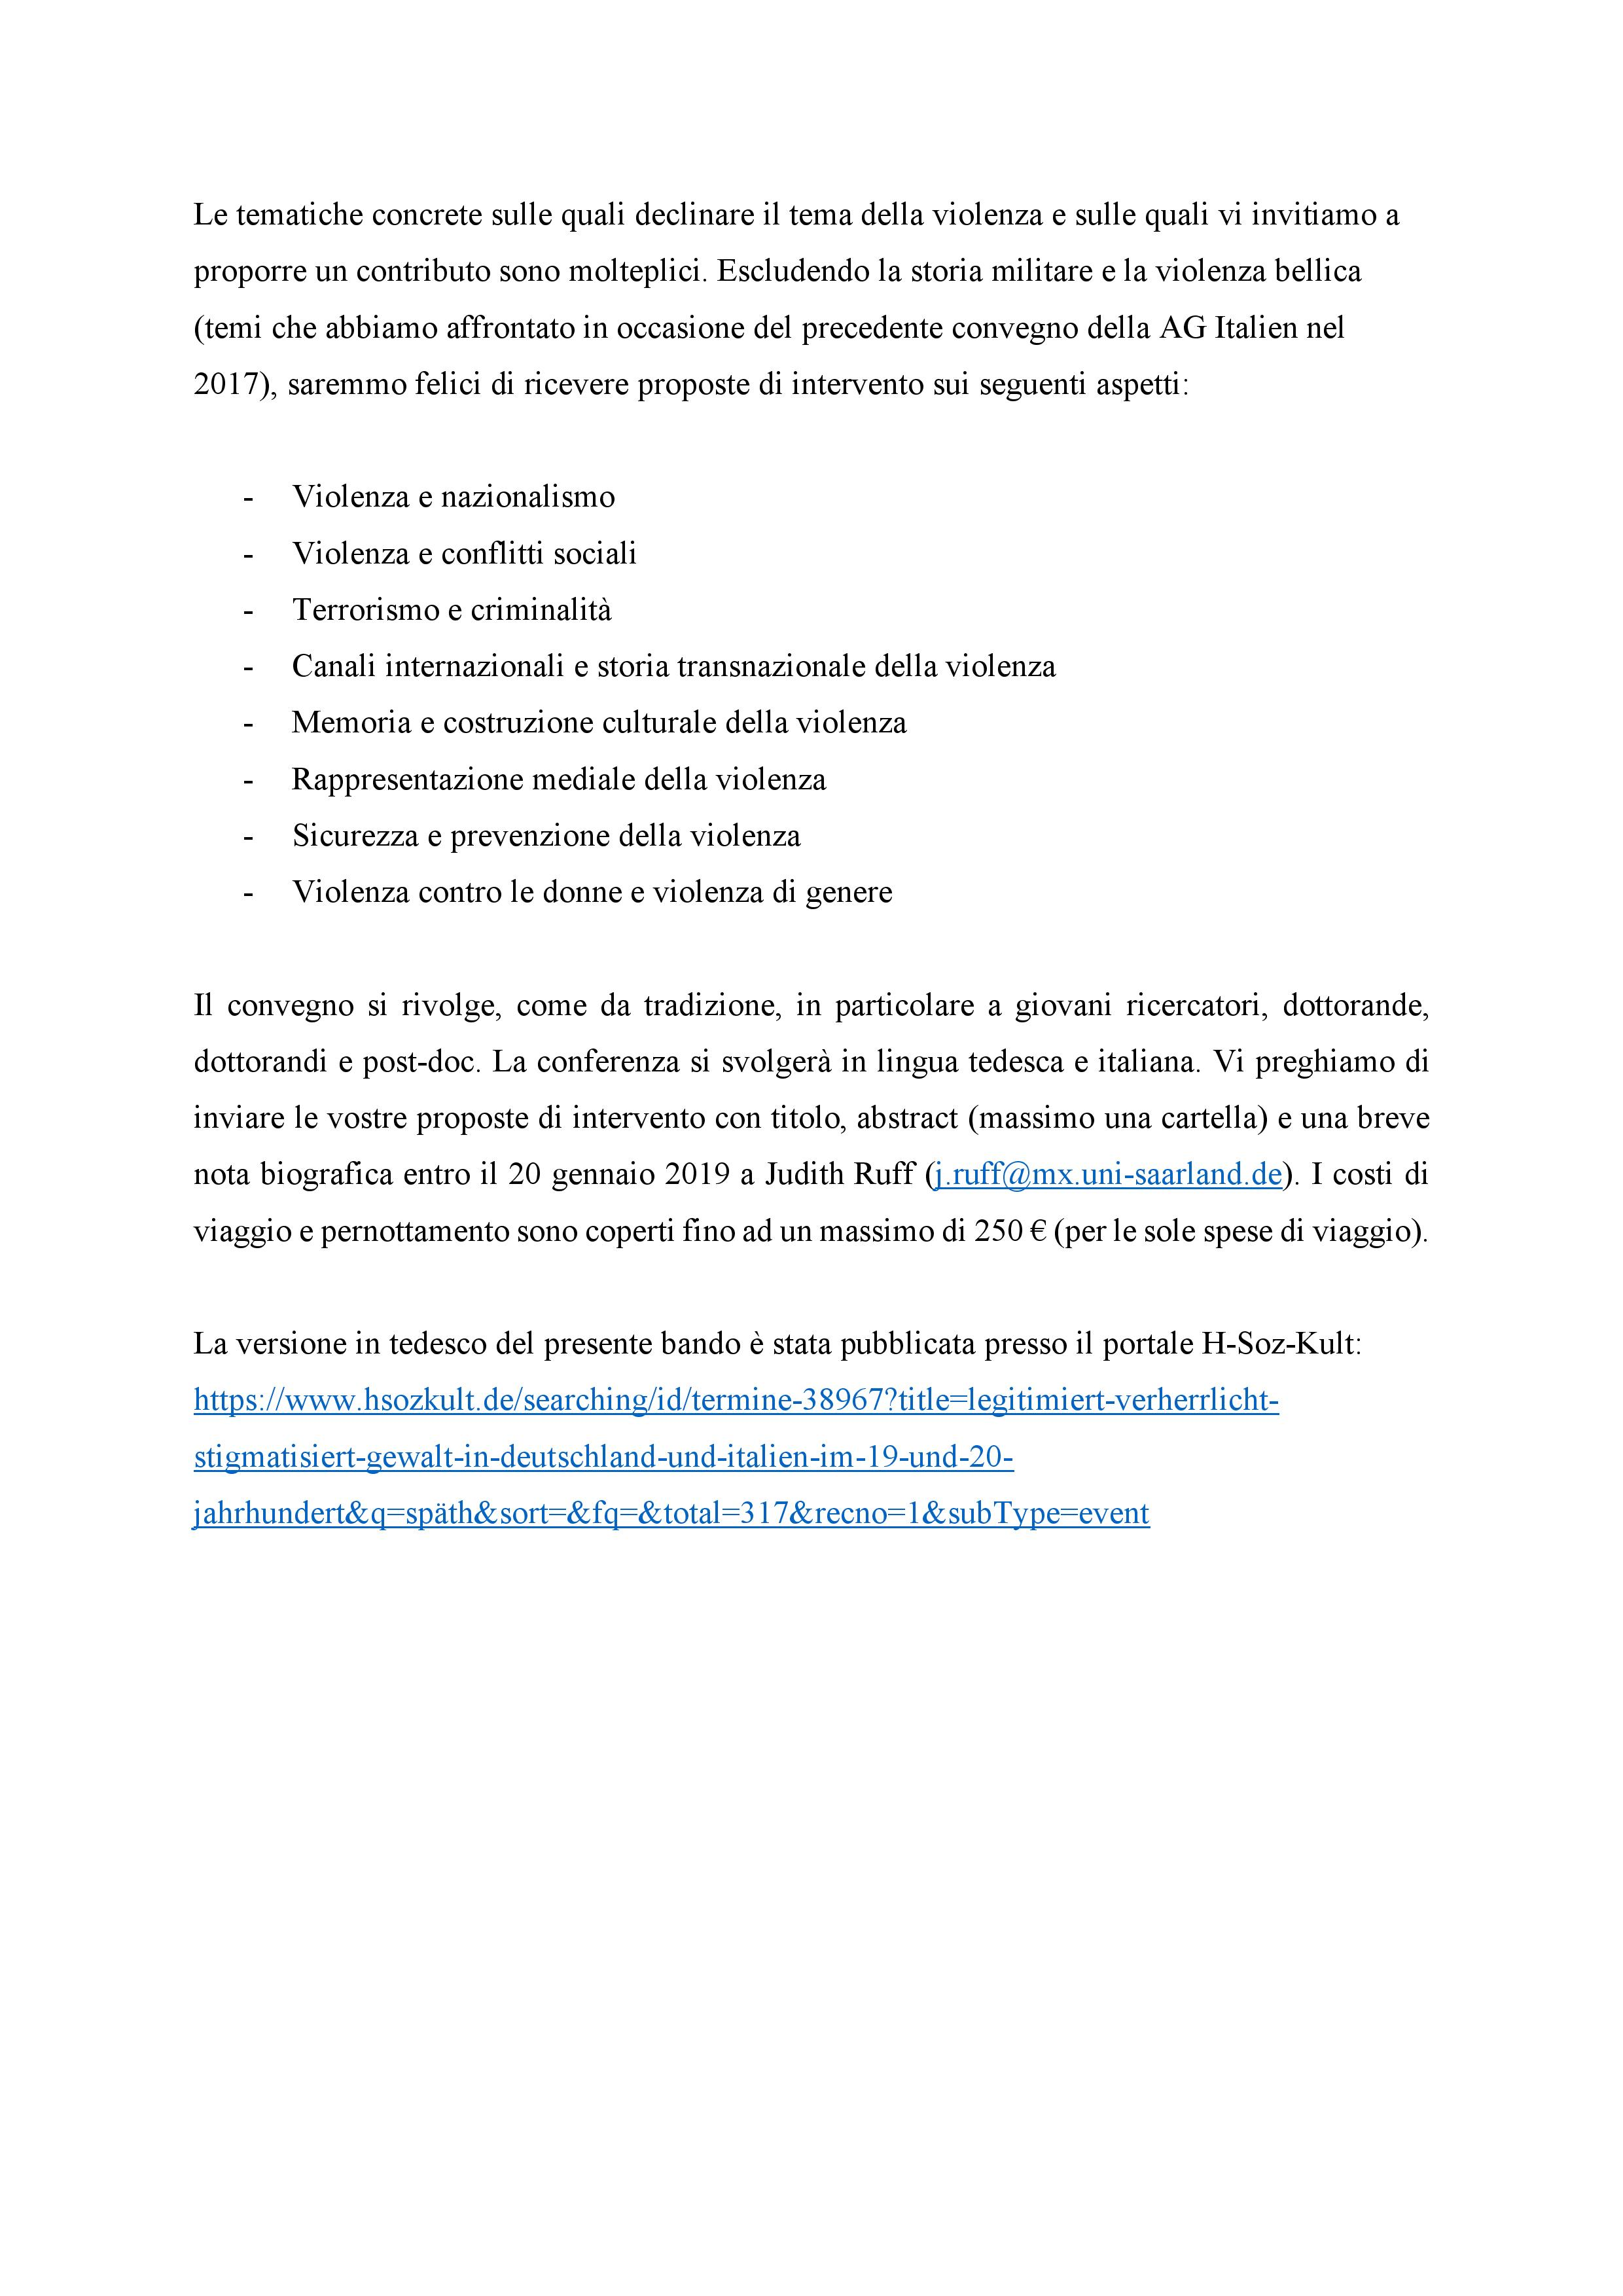 CfP Conferenza AG Italien 2019-page-002